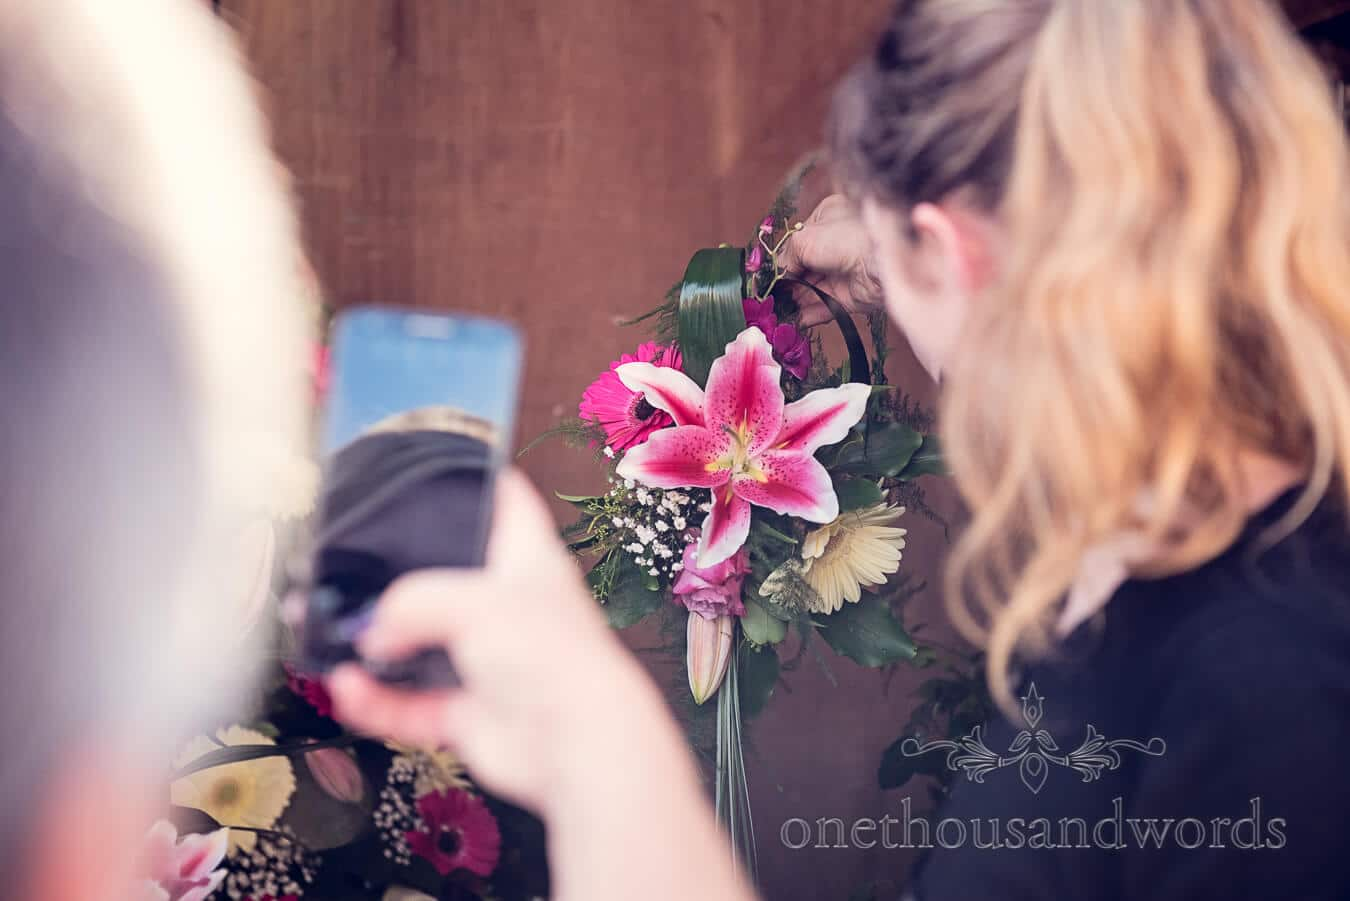 Taking pictures of wedding flowers